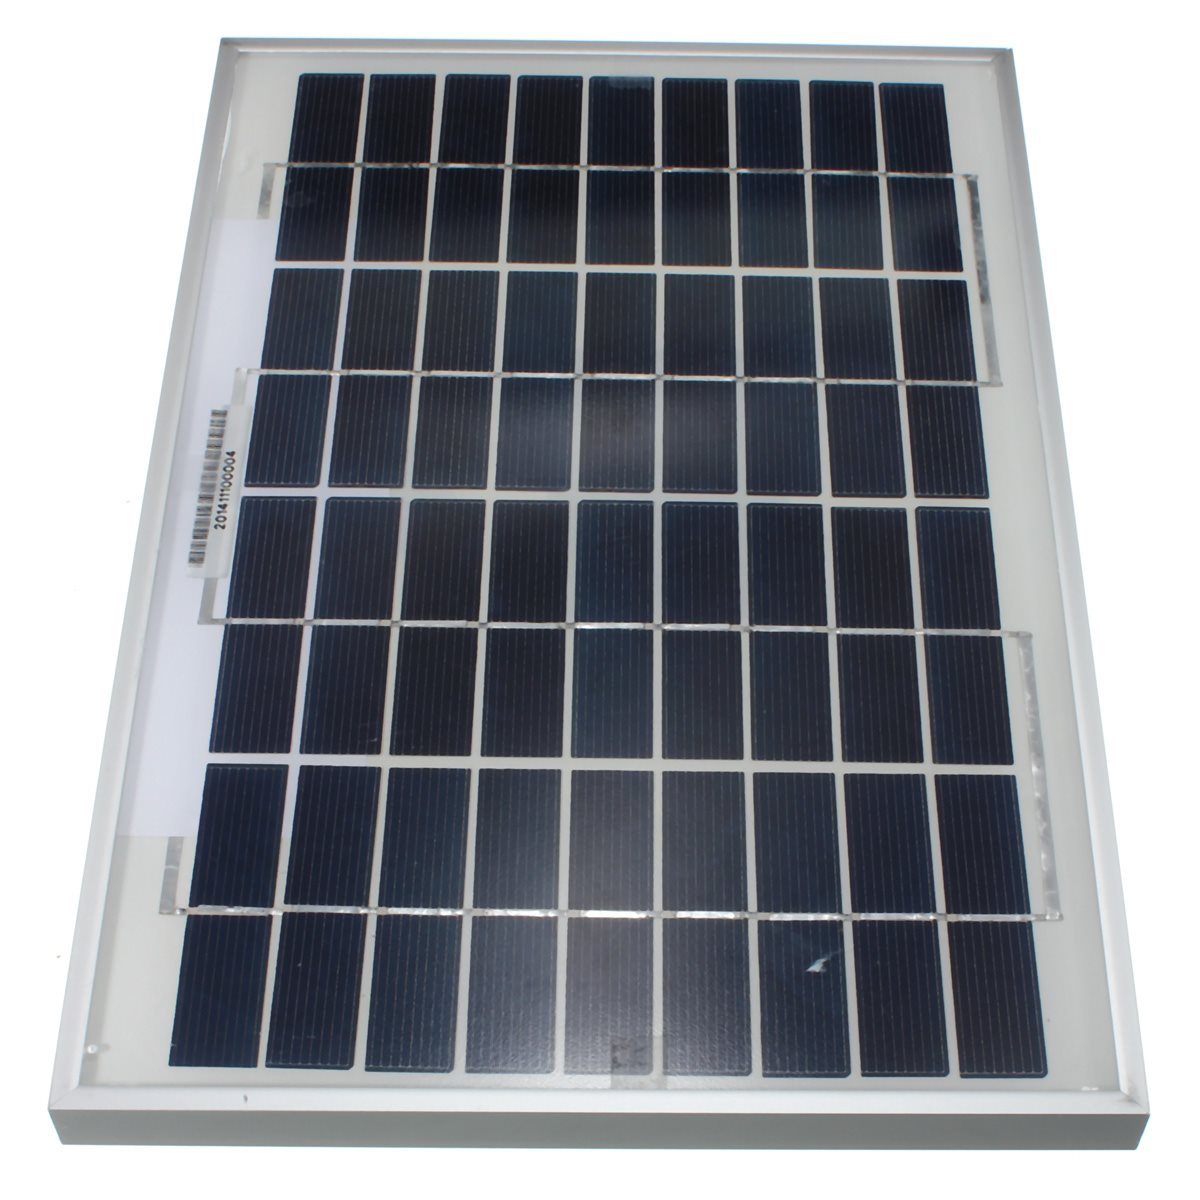 Hot Sale 10W 12V PolyCrystalline Solar Panel  Poly Module For RV Boat Cells Battery Power Charger  345x230x18mm